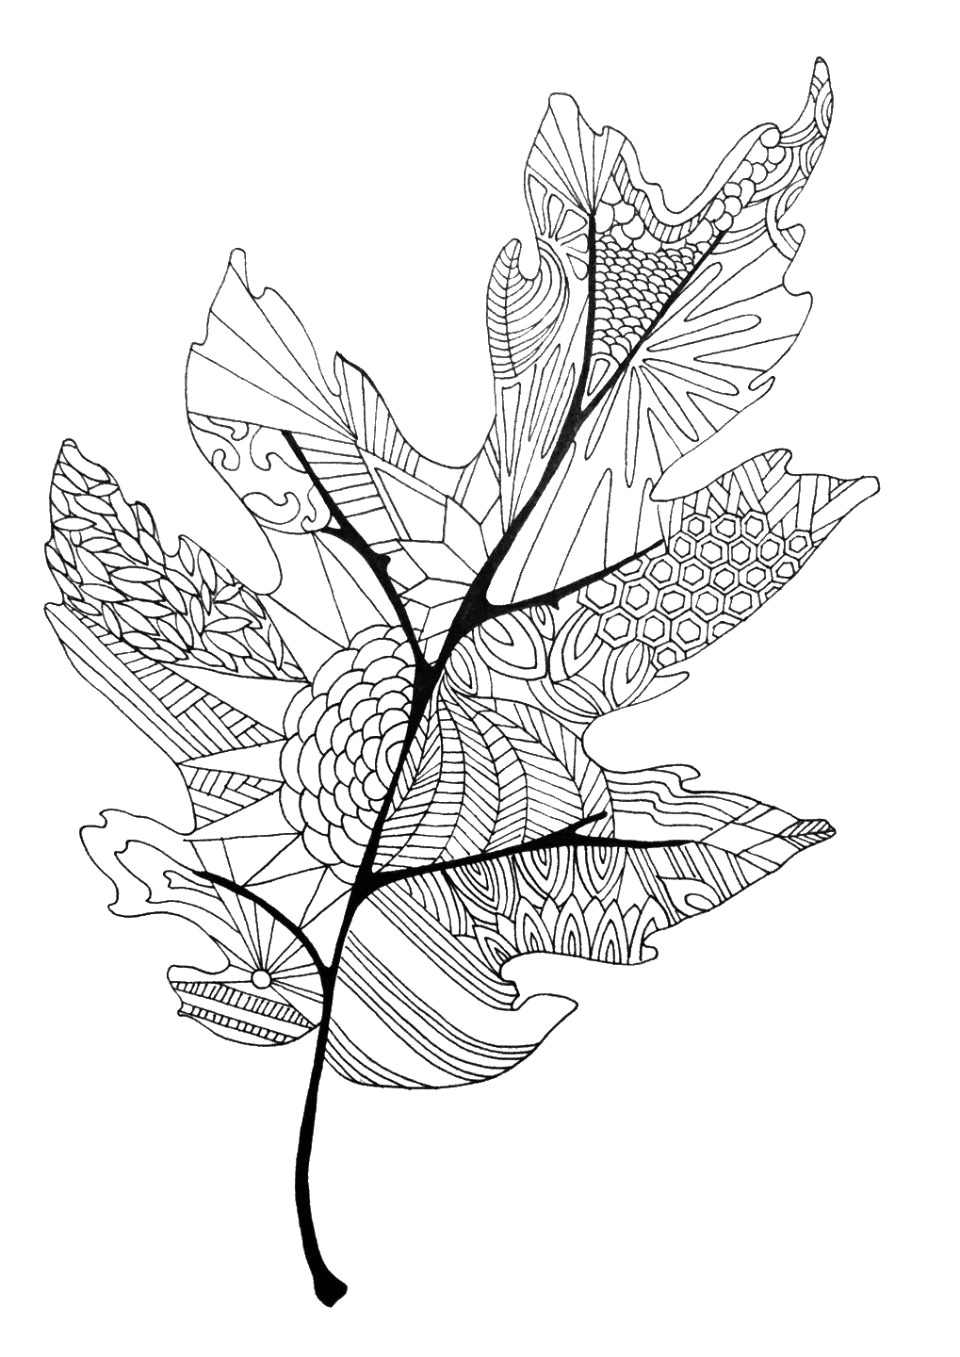 Leaf Coloring Page Fall Leaves Coloring Page Leaf Pages Diywordpress